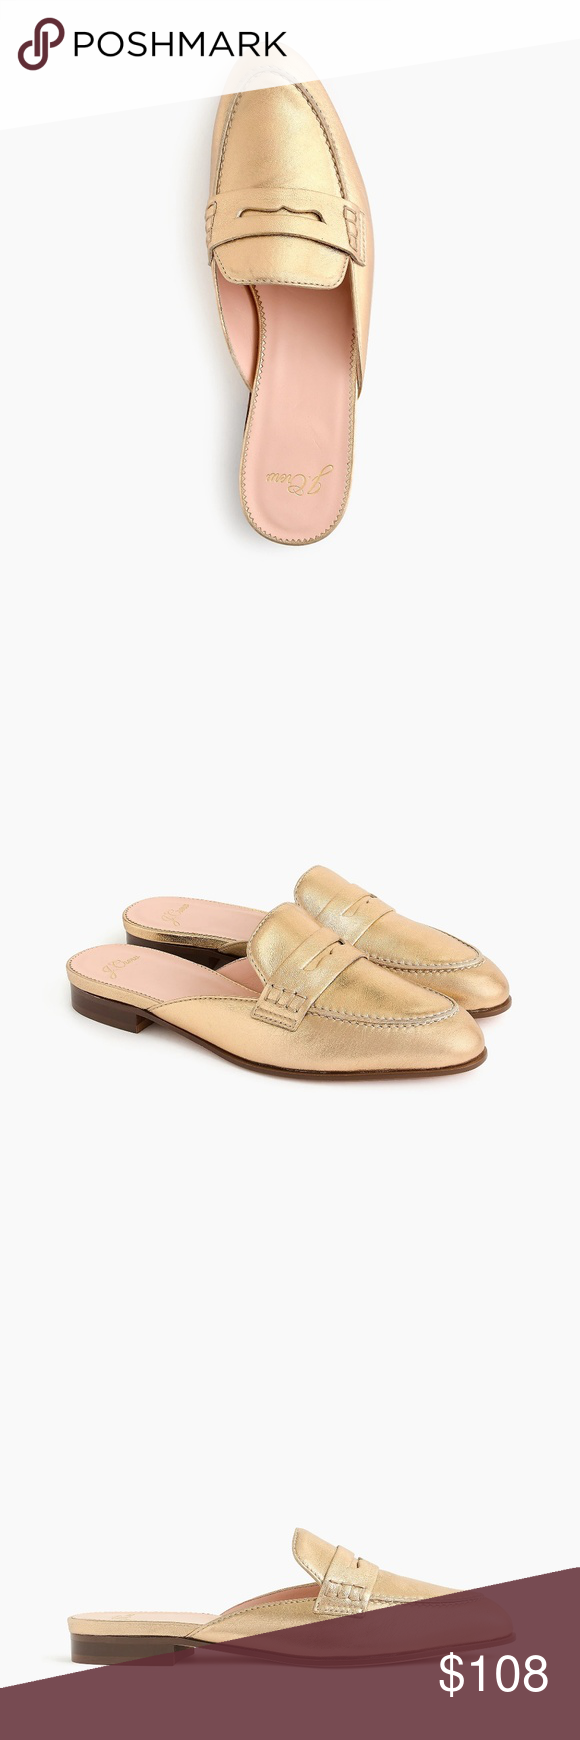 a0ad2ae82ab NIB J. Crew Women s Academy Penny-Loafer Mules J. Crew updated this timeless